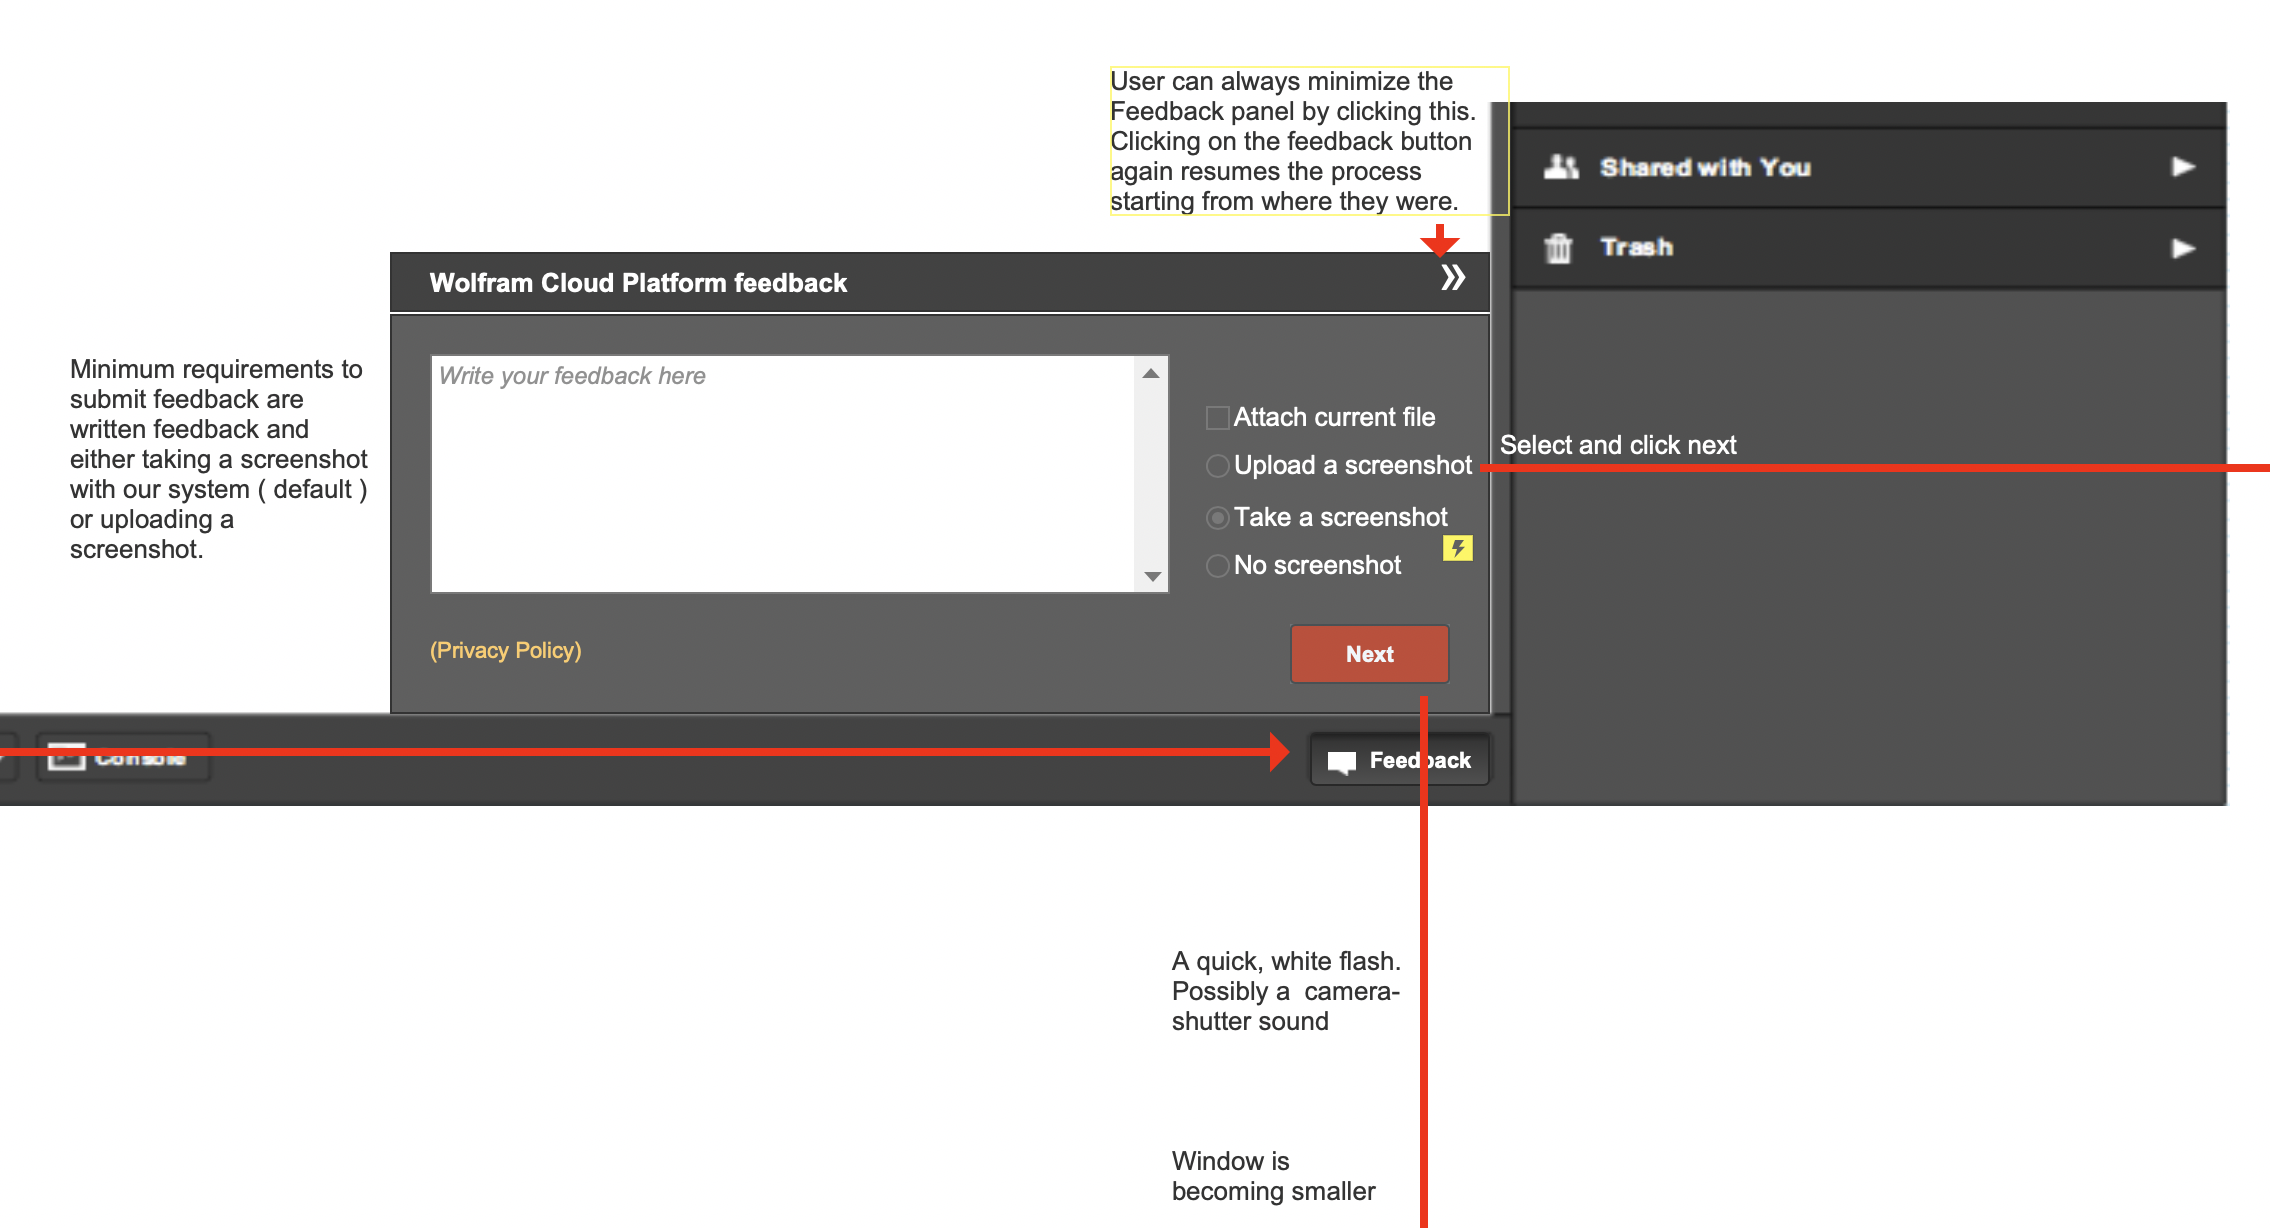 part 2  of wireframe screenshot of flow of feedback interaction prototype for Wolfram Cloud Platform/Mathematica Online